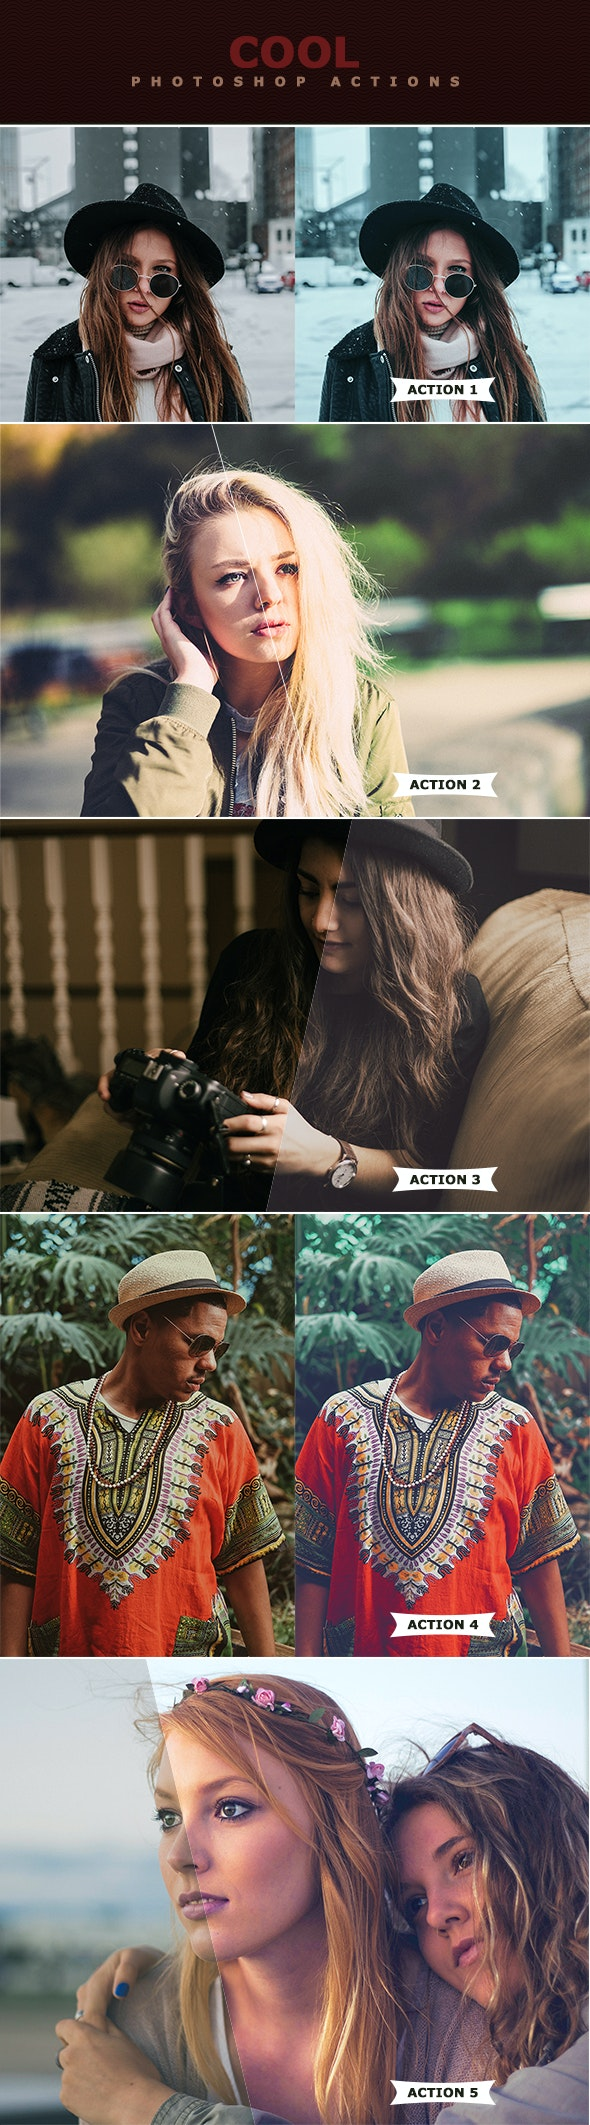 Cool Photoshop Actions - Photo Effects Actions